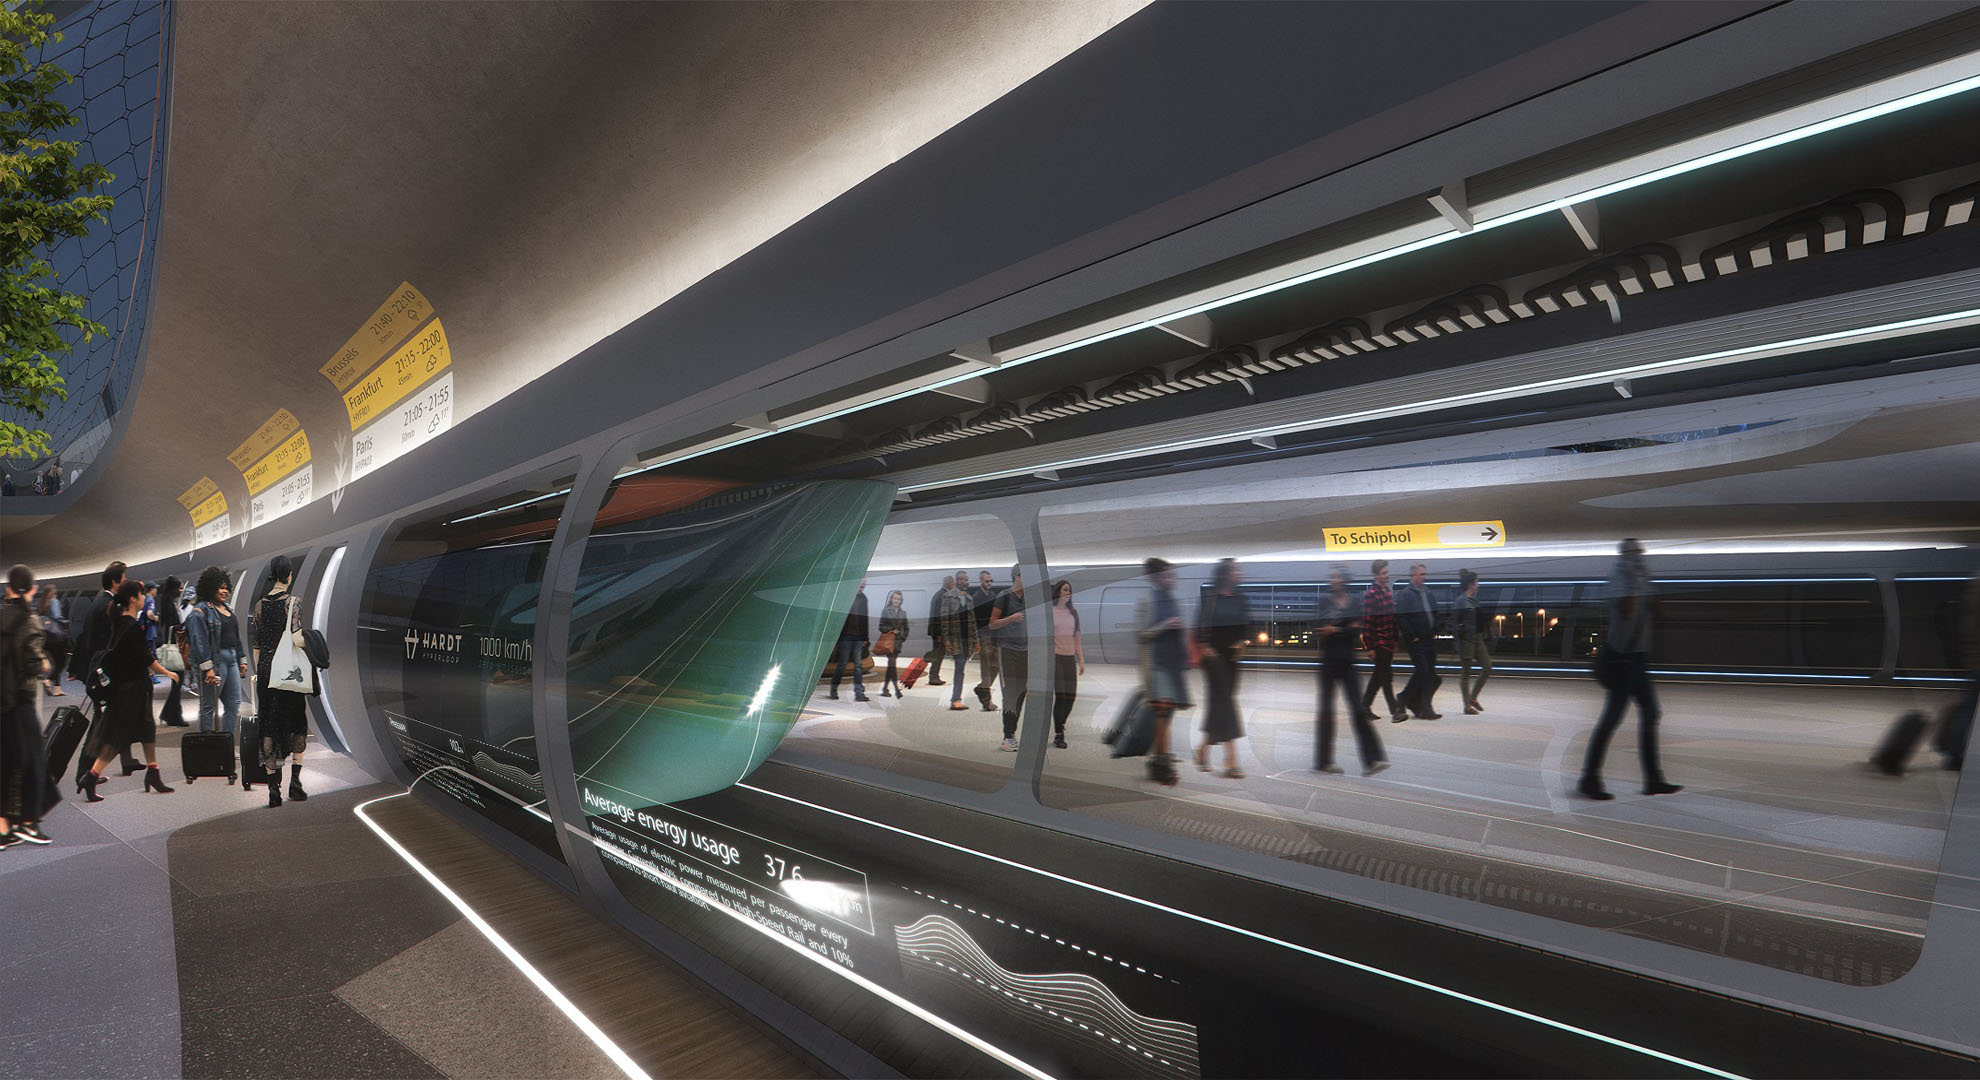 Hardt Hyperloop Platform, Schiphol Airport. UNStudio (station design), Plomopmozes (visualization)